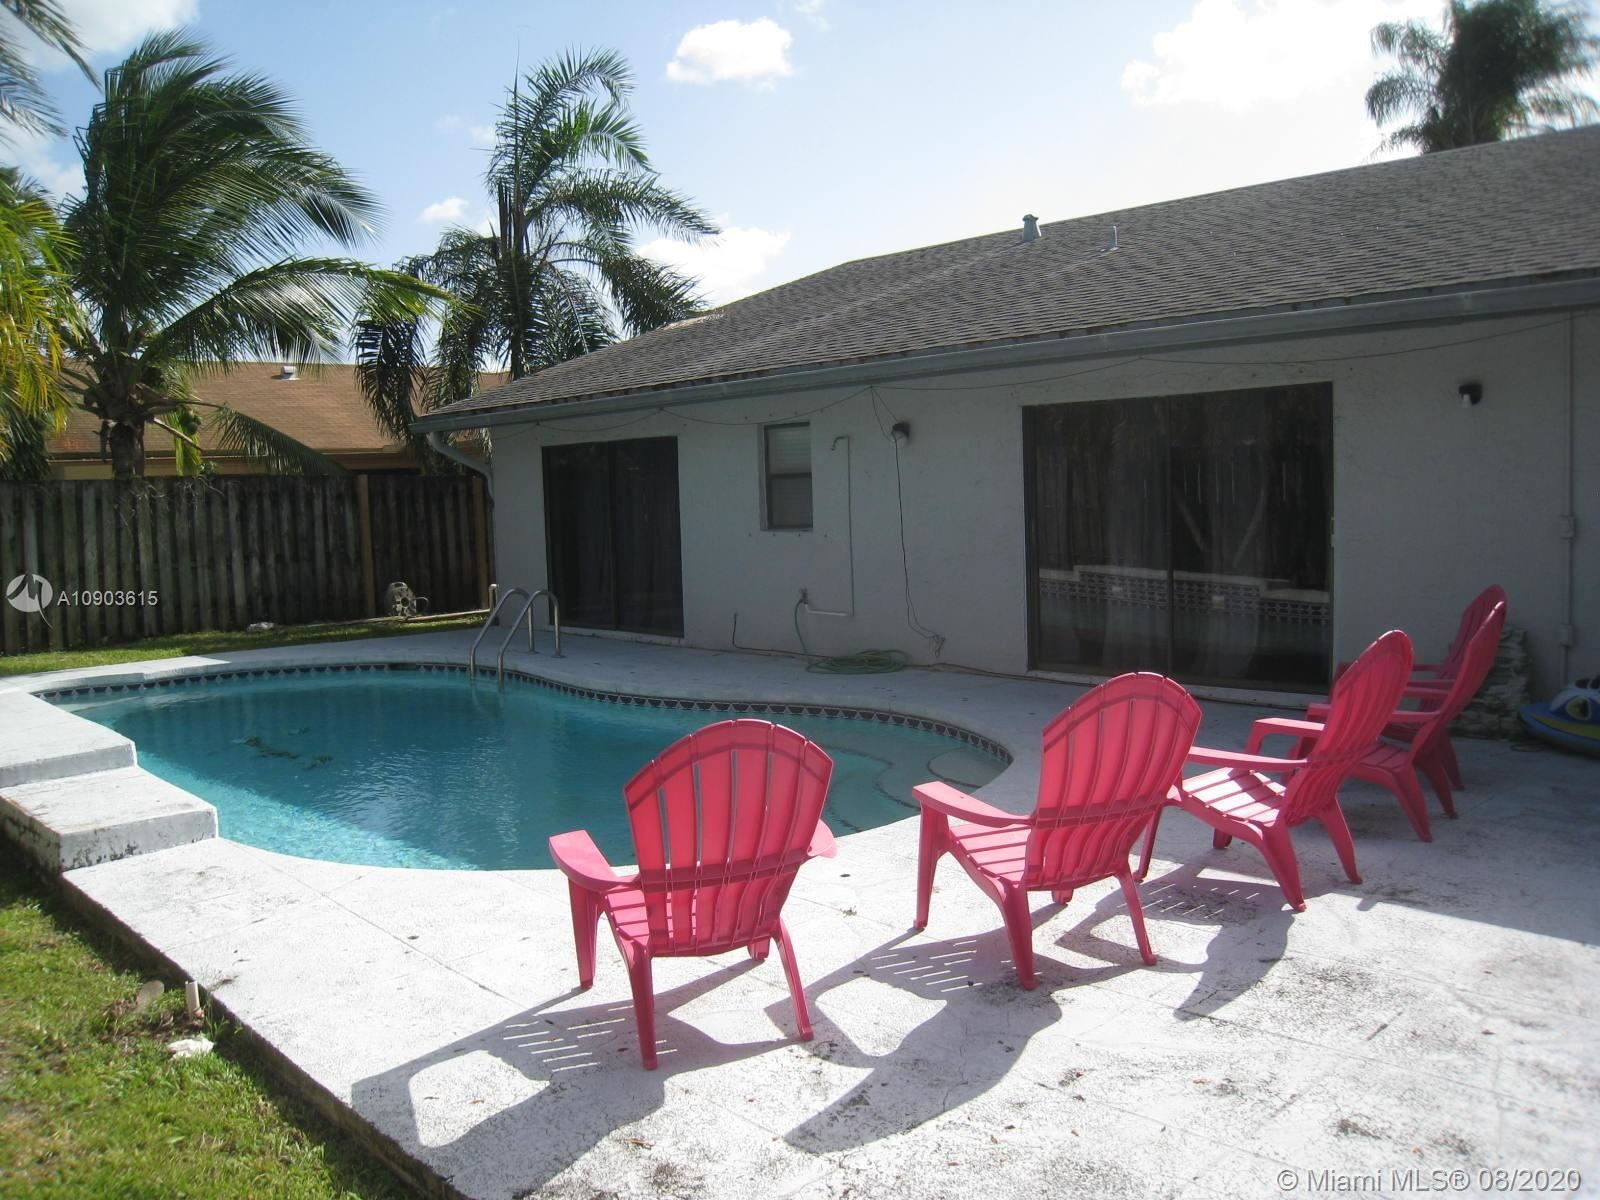 4356 NW 103rd Ave, Sunrise, FL 33351 - #: A10903615